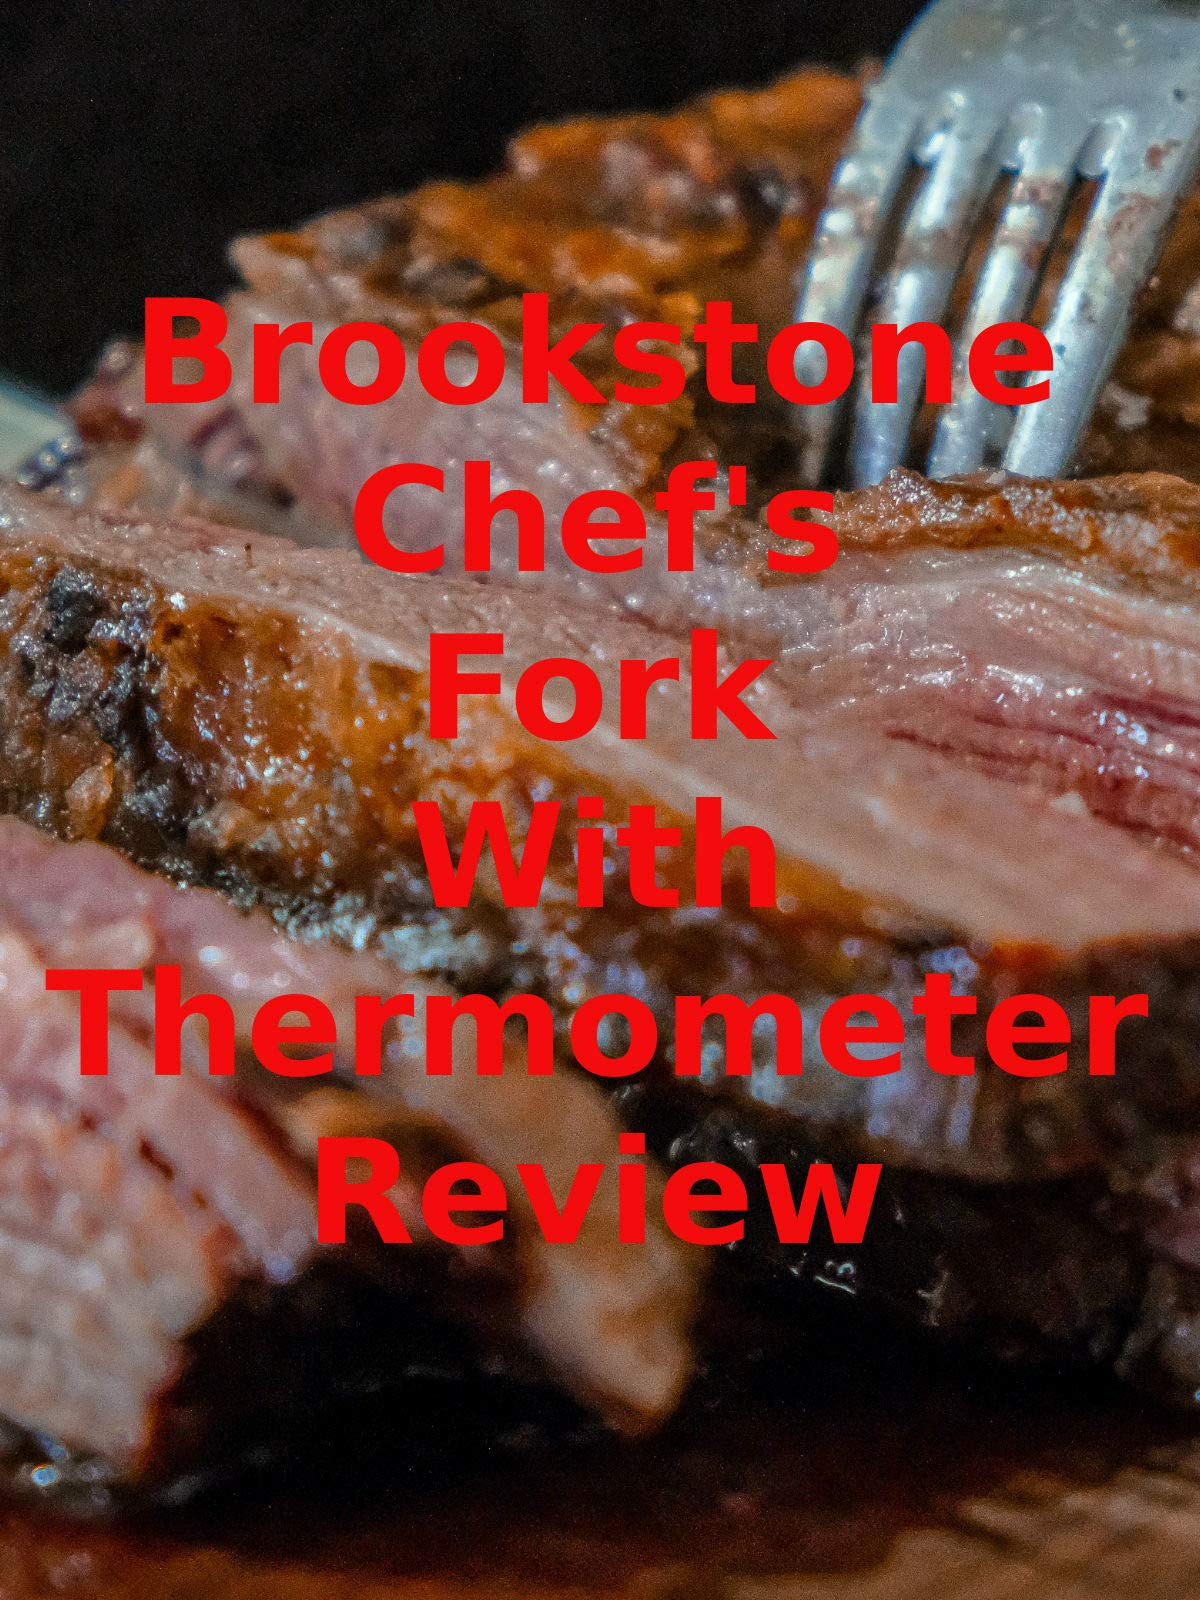 Review: Brookstone Chef's Fork With Thermometer Review on Amazon Prime Video UK